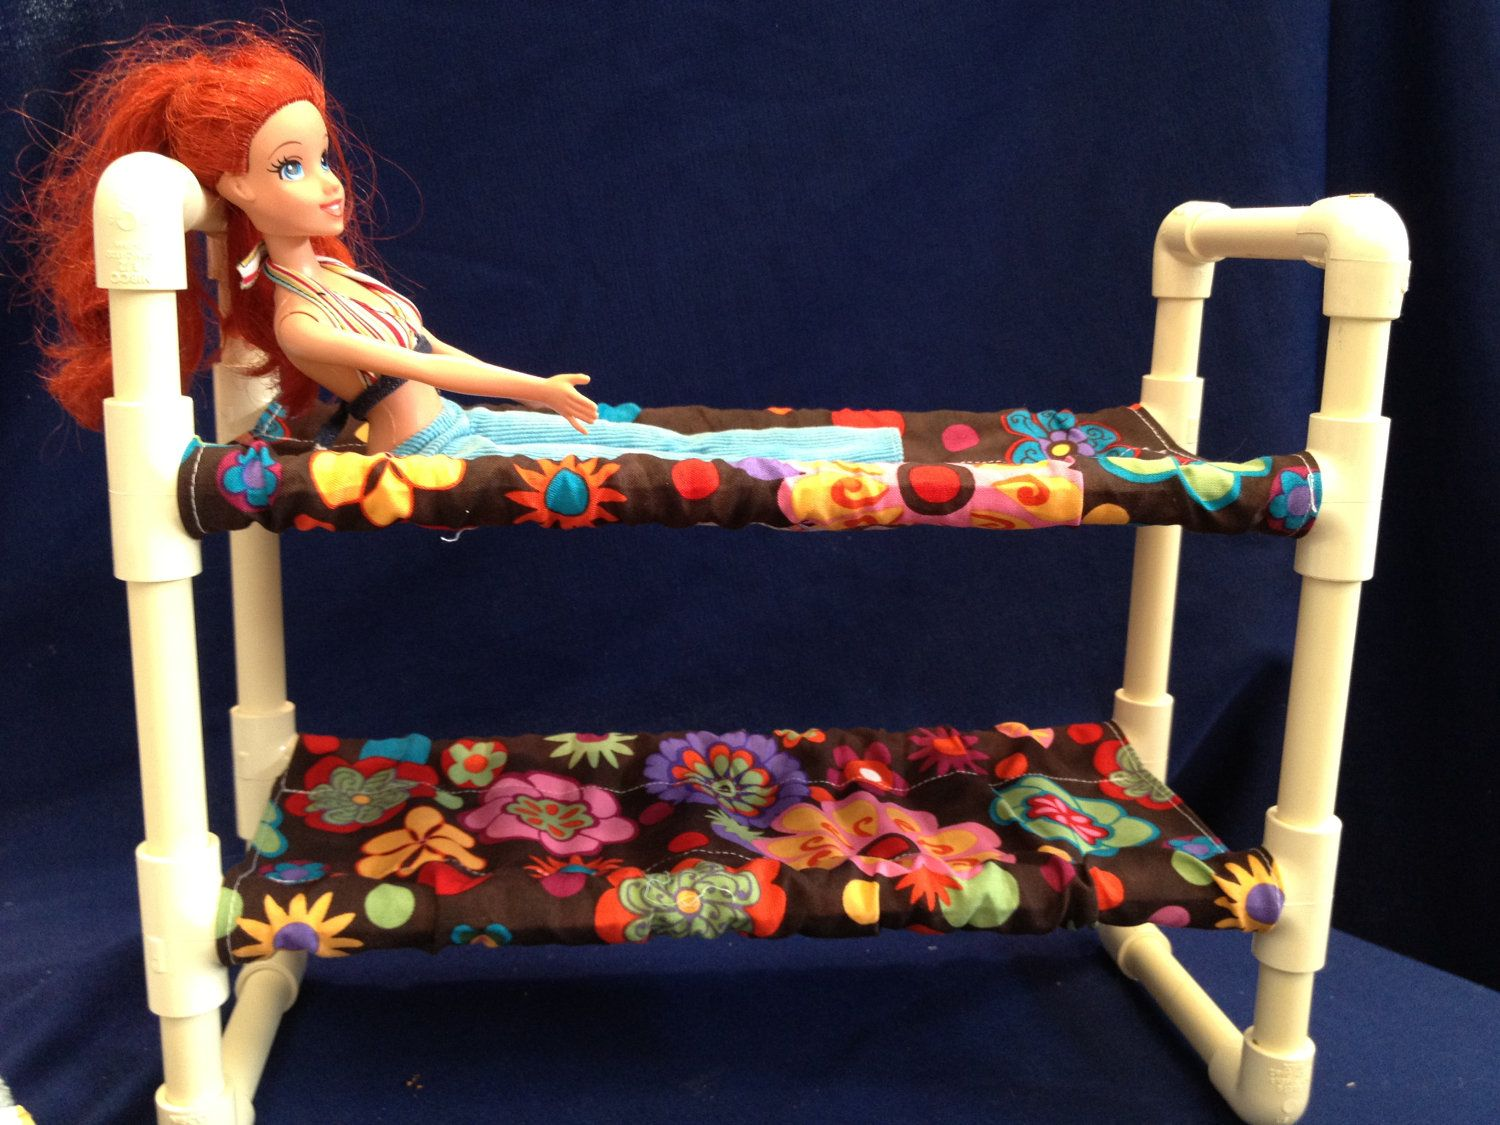 Doll Bunk Bed For Barbie Dolls Beanie Babies Stuffed Animals